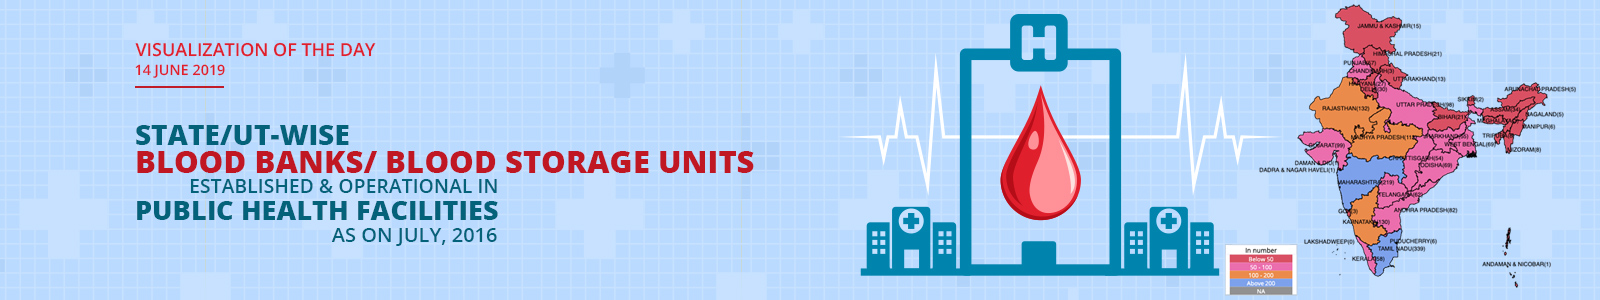 Visualization of the Day - 14th June 2019 : State/UT-wise Blood Banks/ Blood Storage Units Established and Operational in Public Health Facilities as on July, 2016